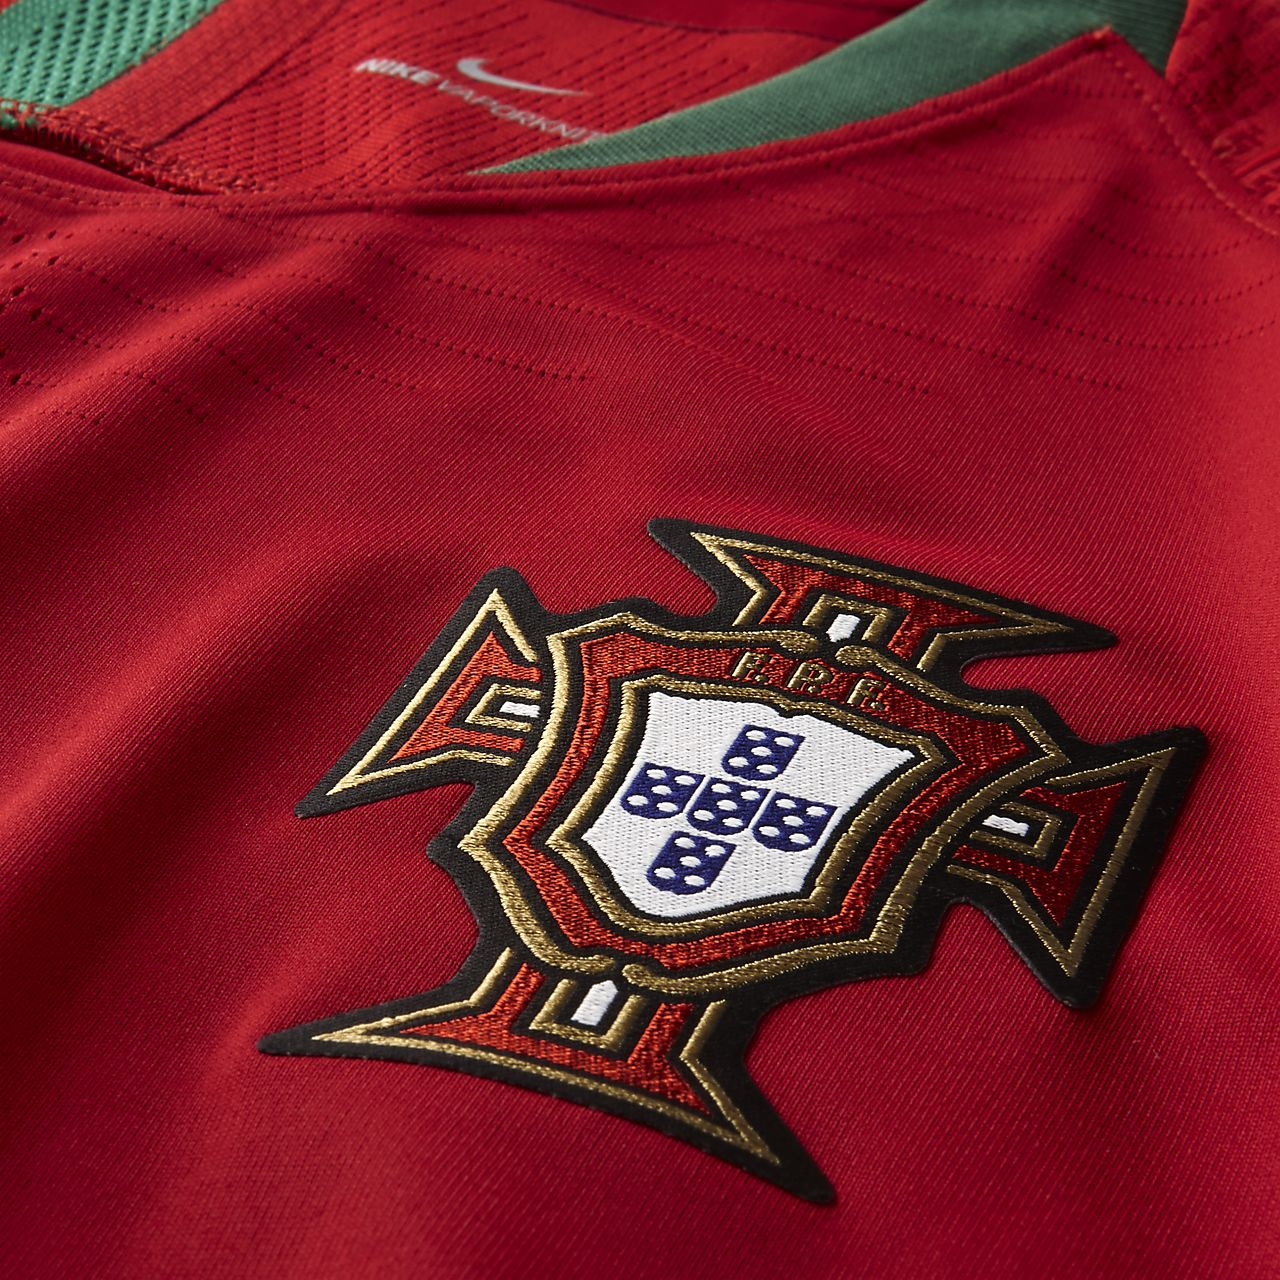 ... 2018 Portugal Vapor Match Home Men's Football Shirt